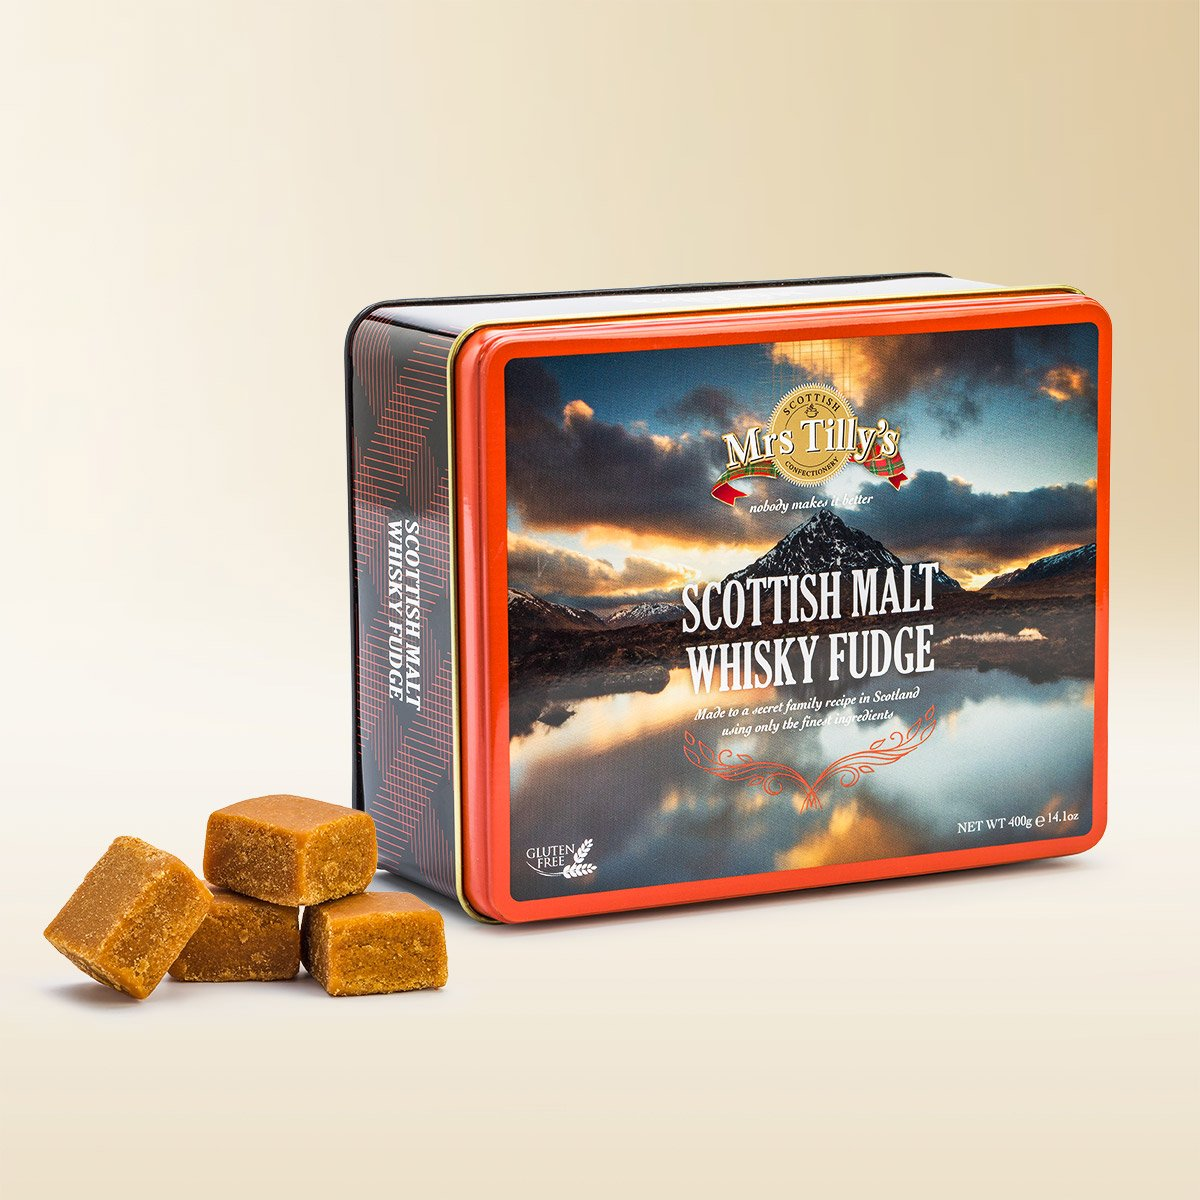 Scottish Malt Whisky Fudge 400g